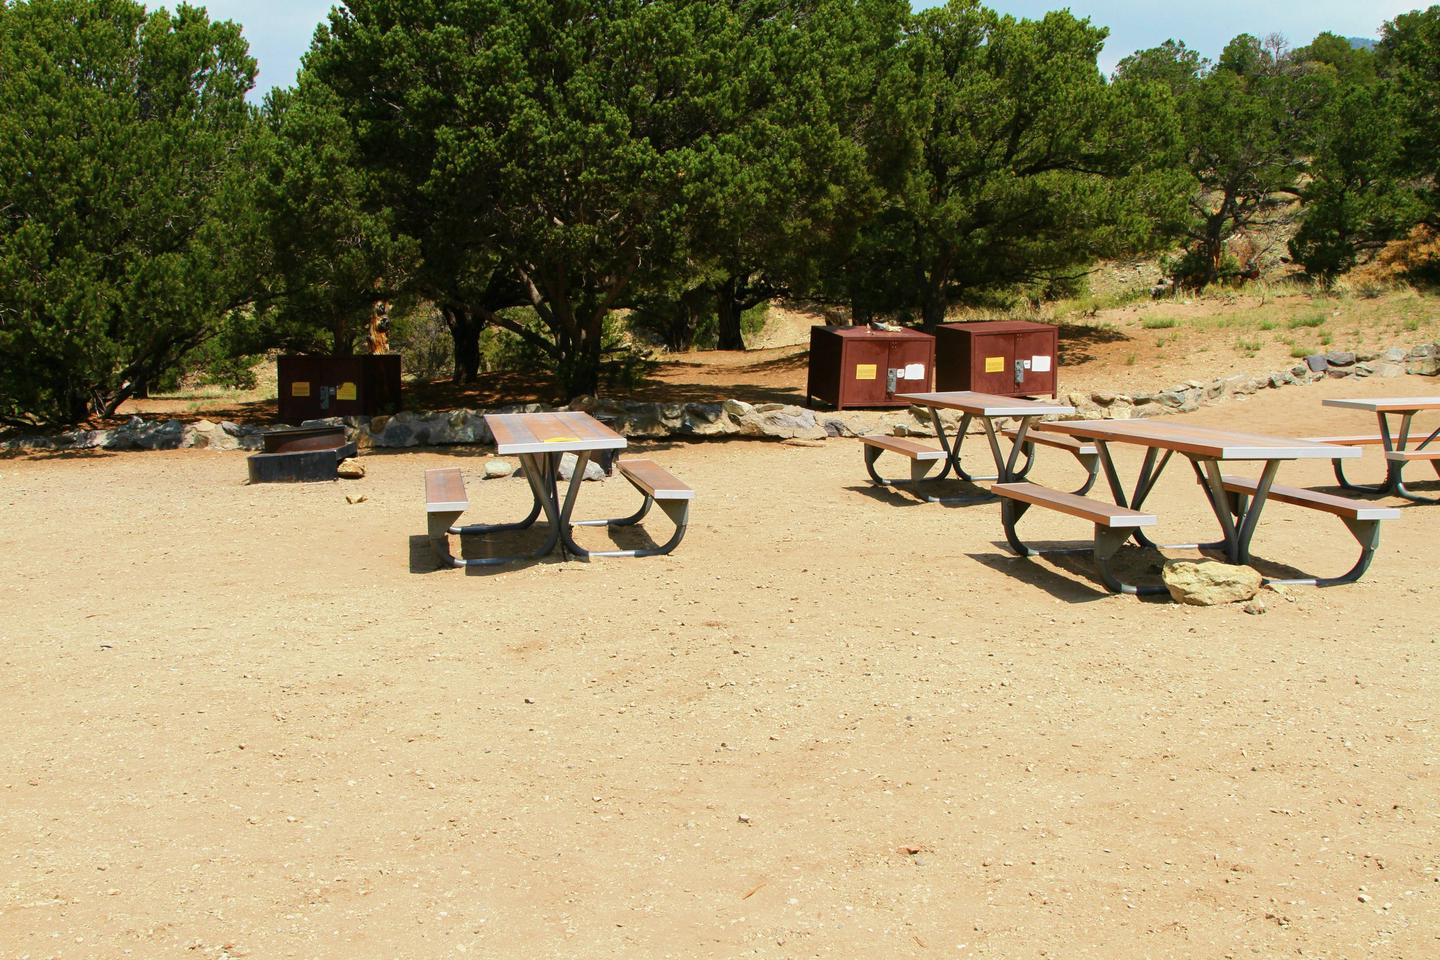 Group Site C, Pinon Flats Campground